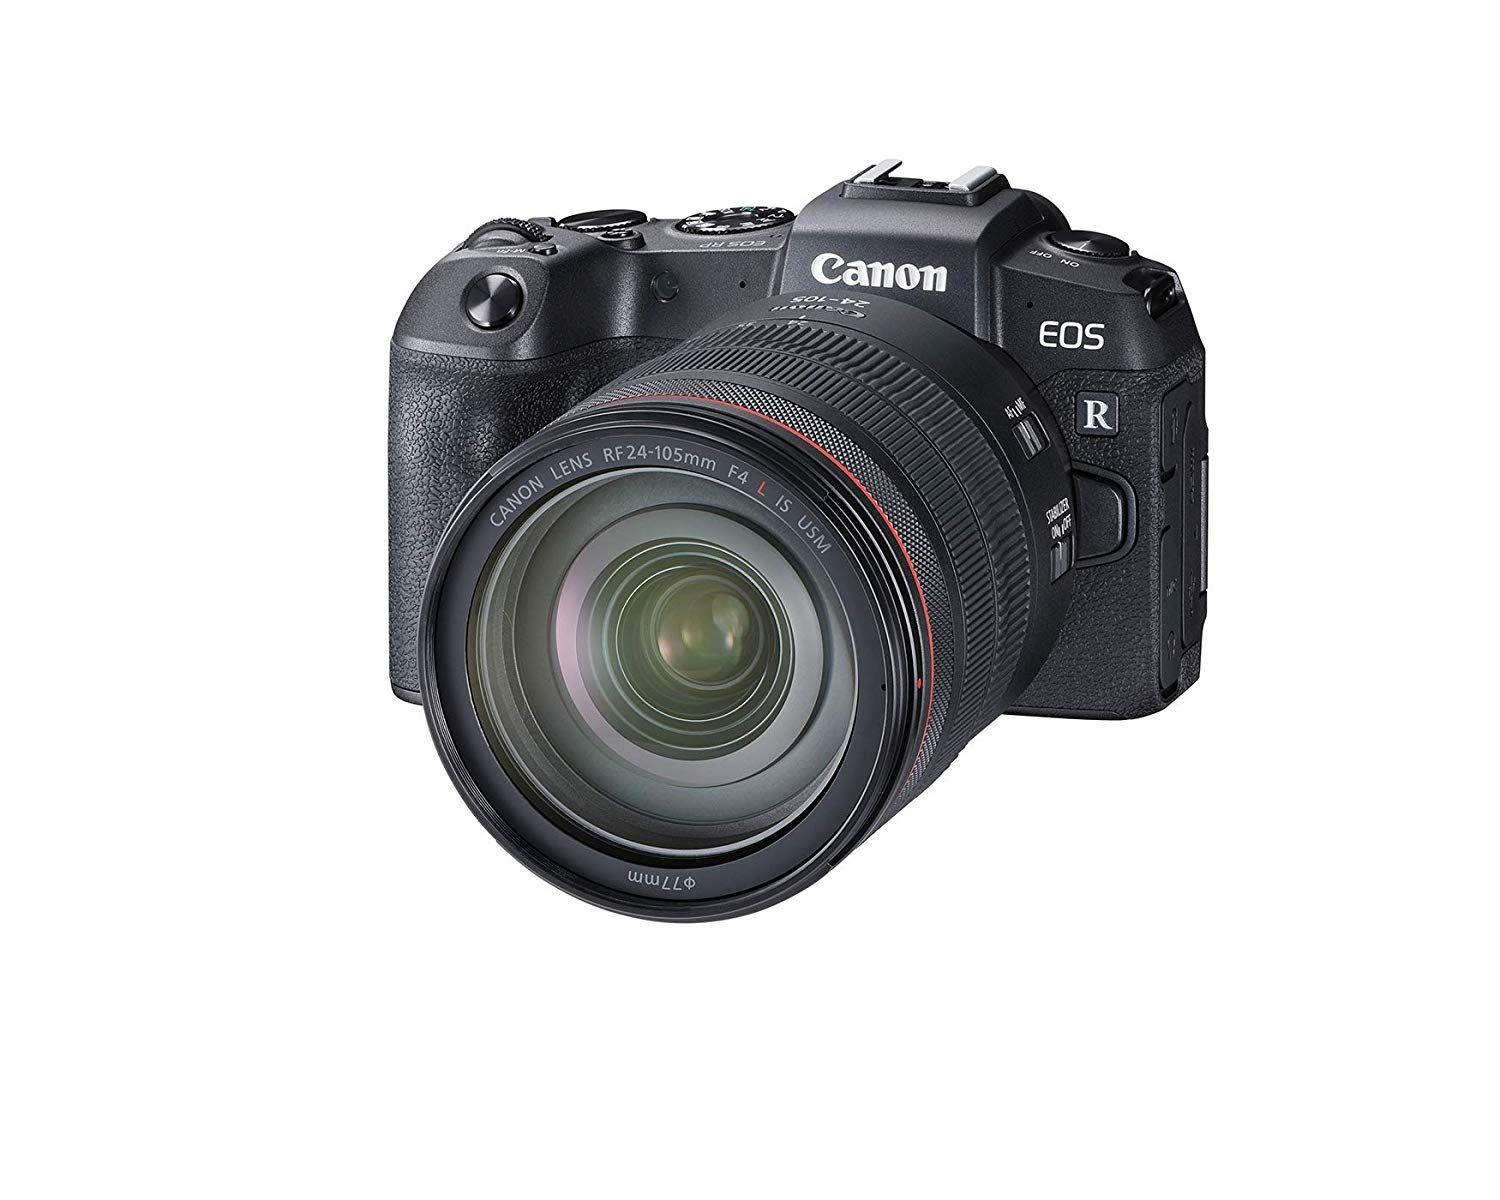 Lightest Smallest Full Frame Eos Camera Rf Mount Compatible With Rf Lenses And Ef Ef S Lenses High Image Quality W Mirrorless Camera Canon Camera Canon Eos